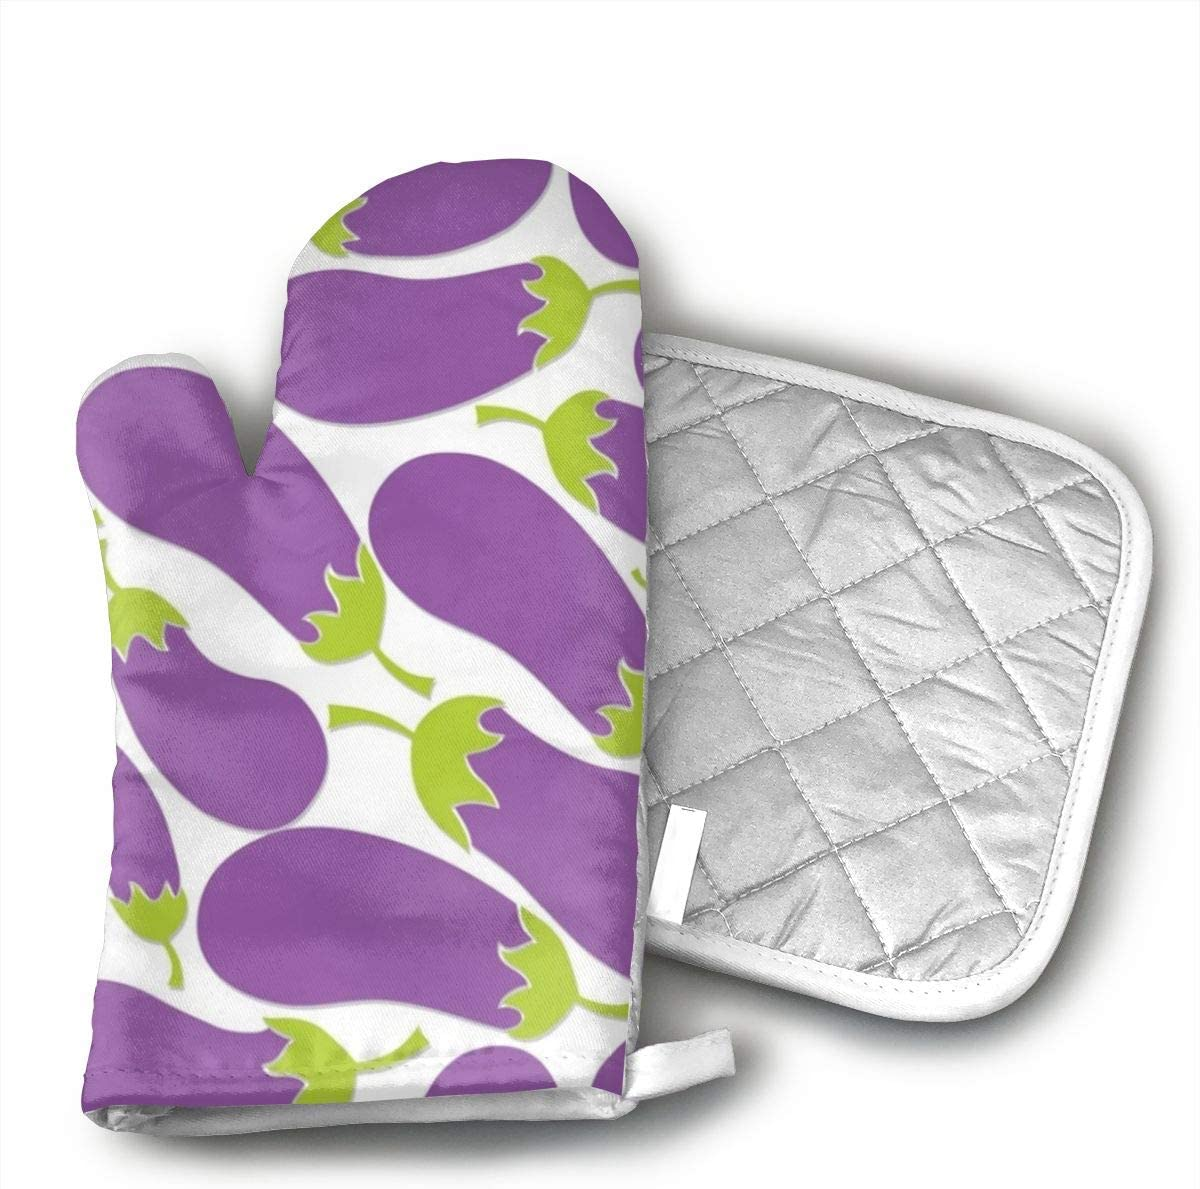 Wiqo9 Purple Eggplant Oven Mitts and Pot Holders Kitchen Mitten Cooking Gloves,Cooking, Baking, BBQ.